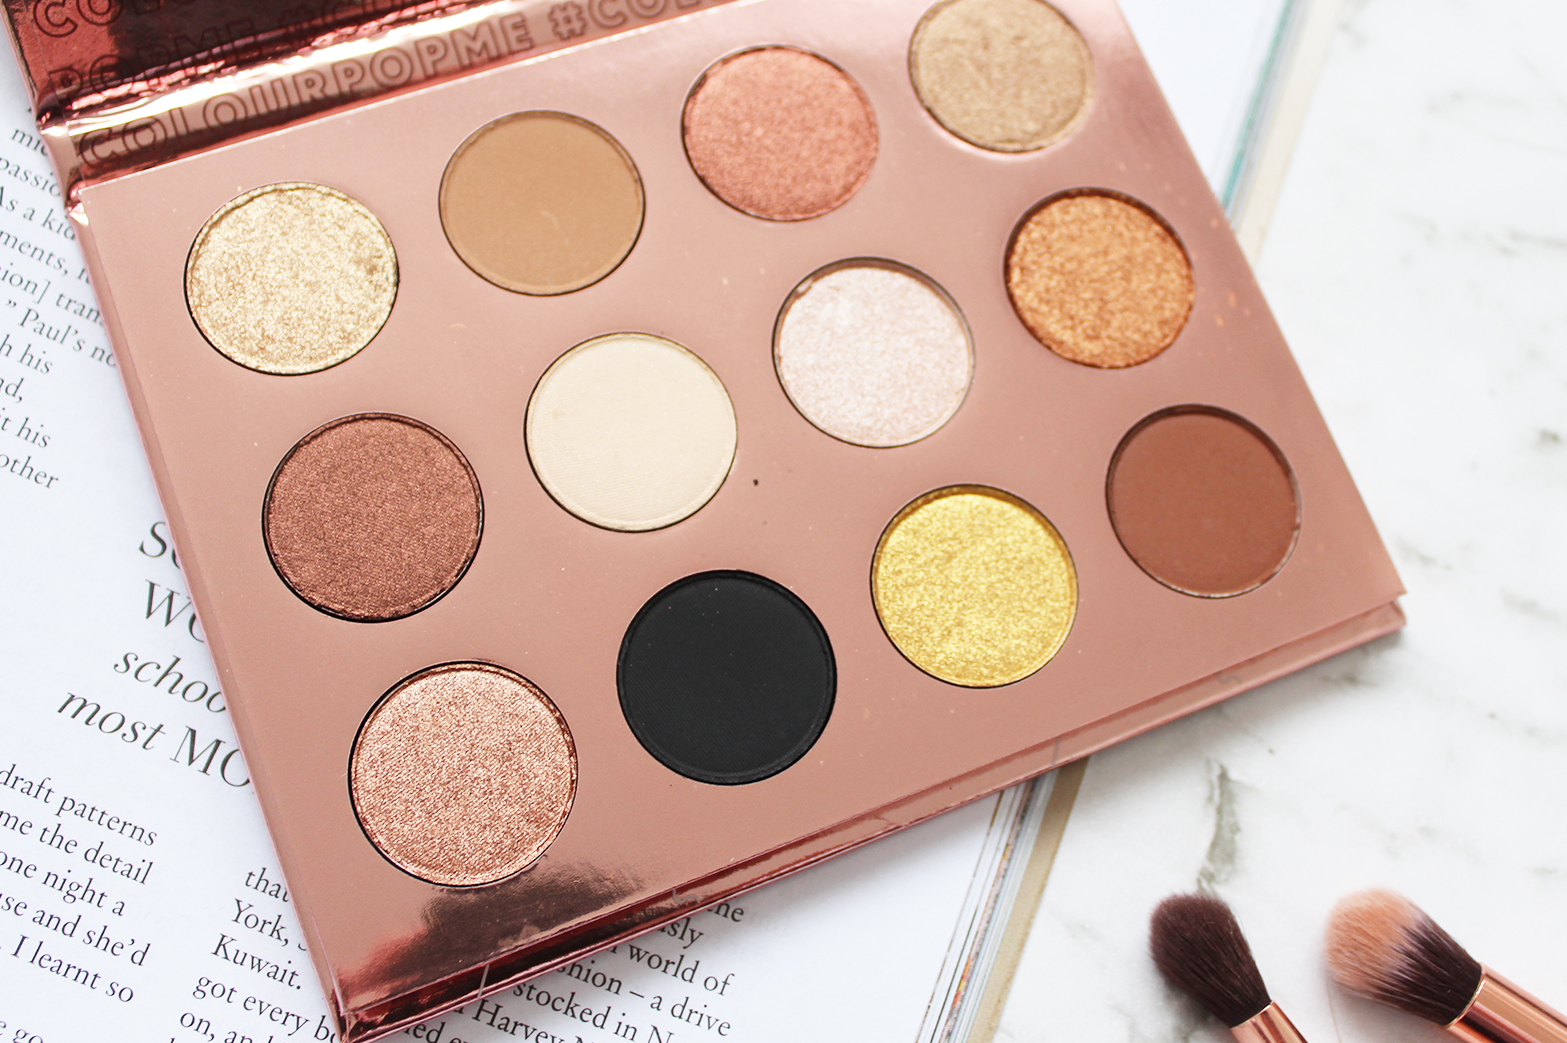 COLOURPOP | I Think I Love You Pressed Shadow Palette - Review + Swatches - CassandraMyee